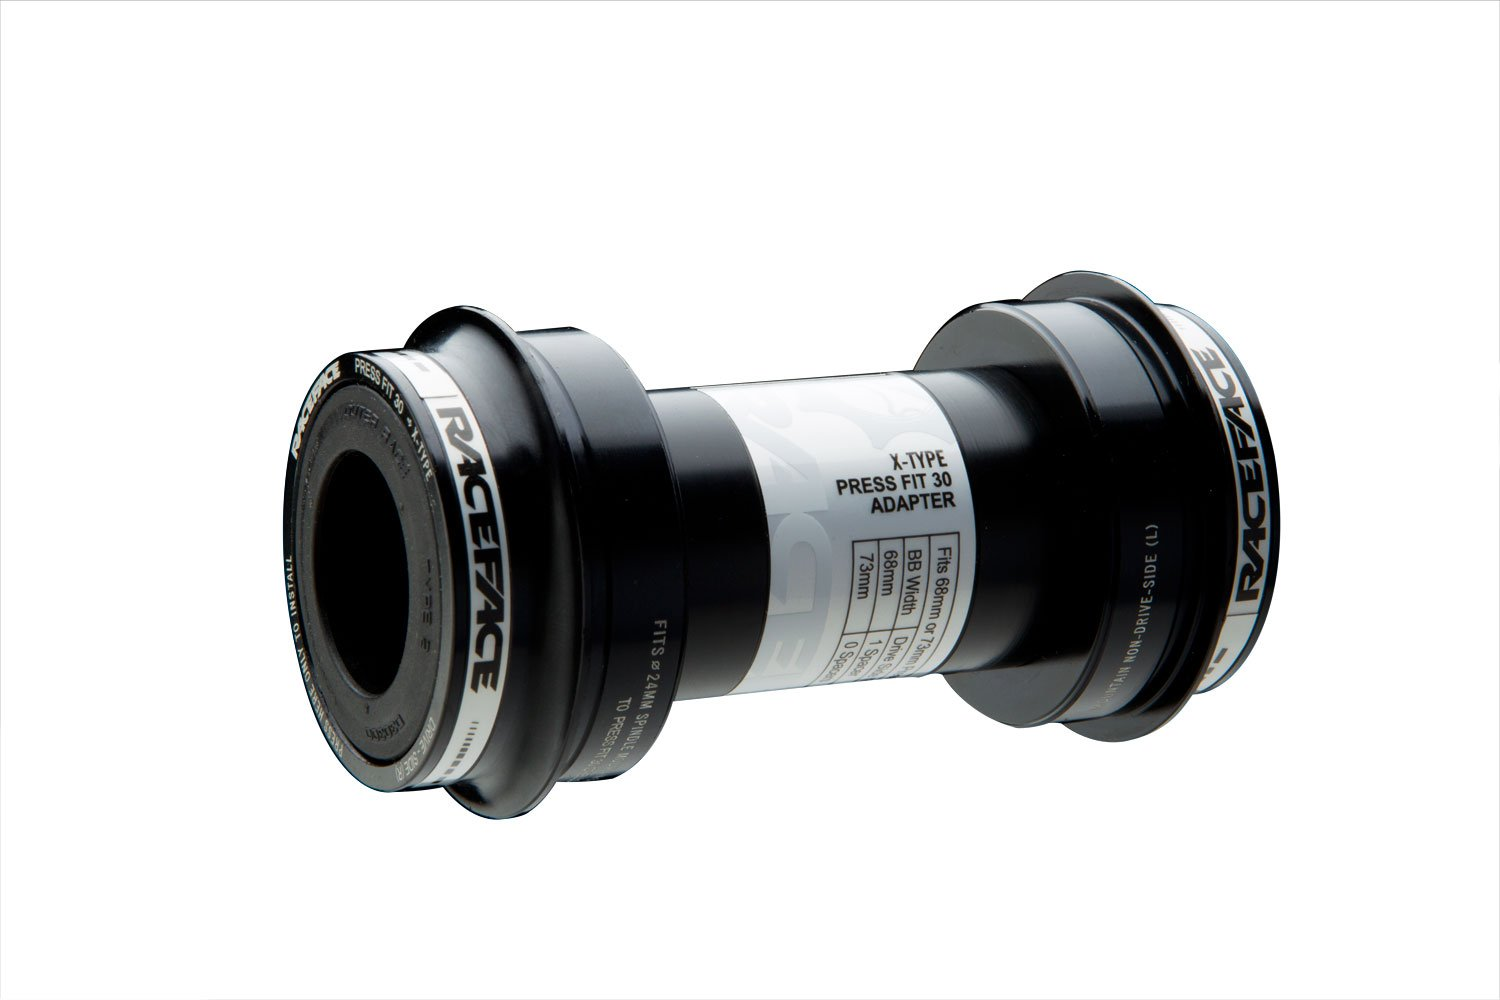 RaceFace Mountain Bicycle PressFit30 To X-Type Adapter